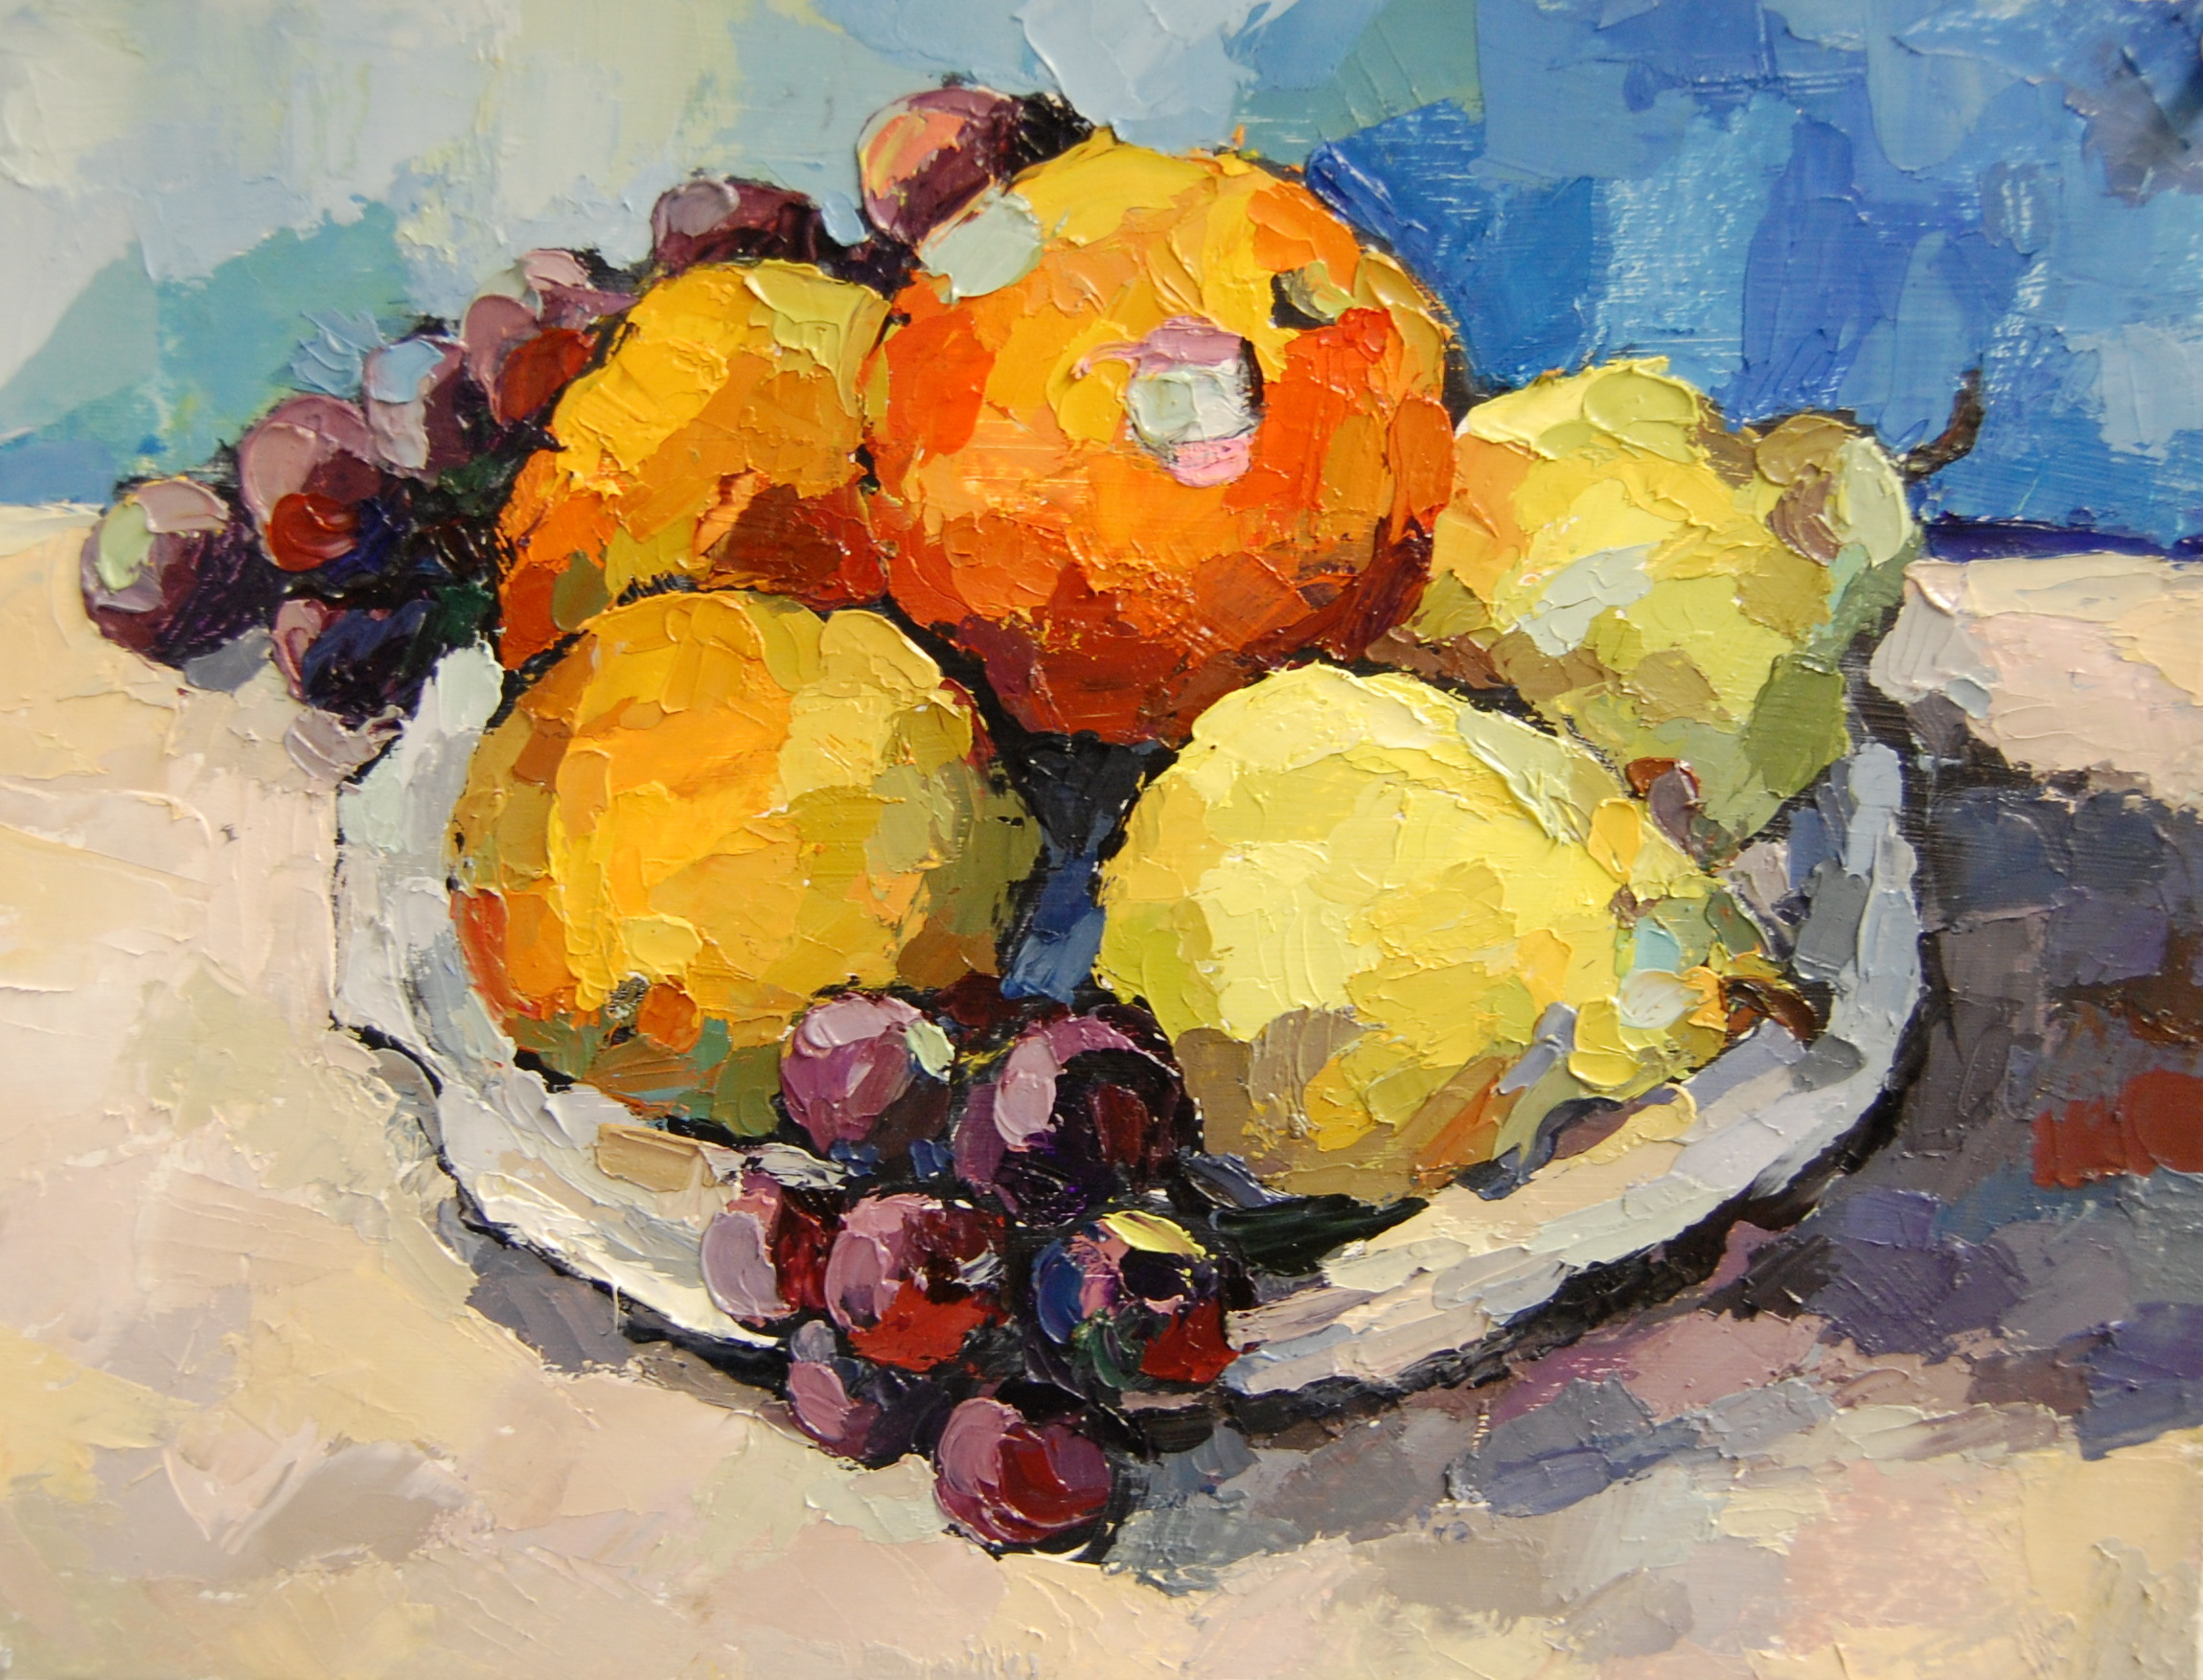 Fruit Still Life, Oil on paper, 2011